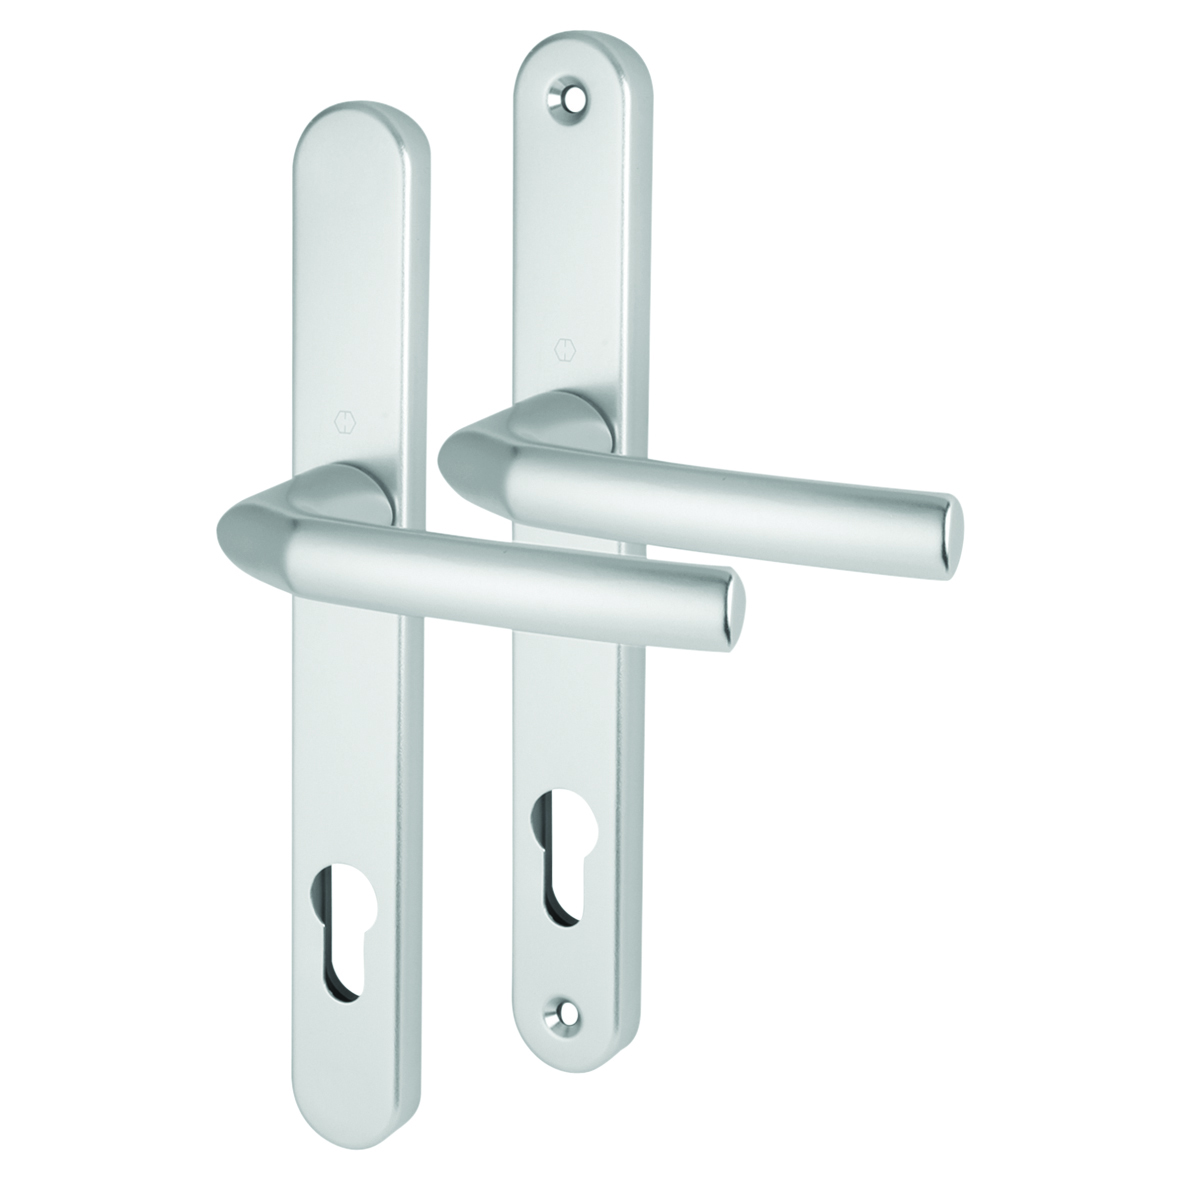 Hoppe Birmingham - uPVC/Timber - Multipoint Long Plate Handle - 92mm centres - 70mm door thickness